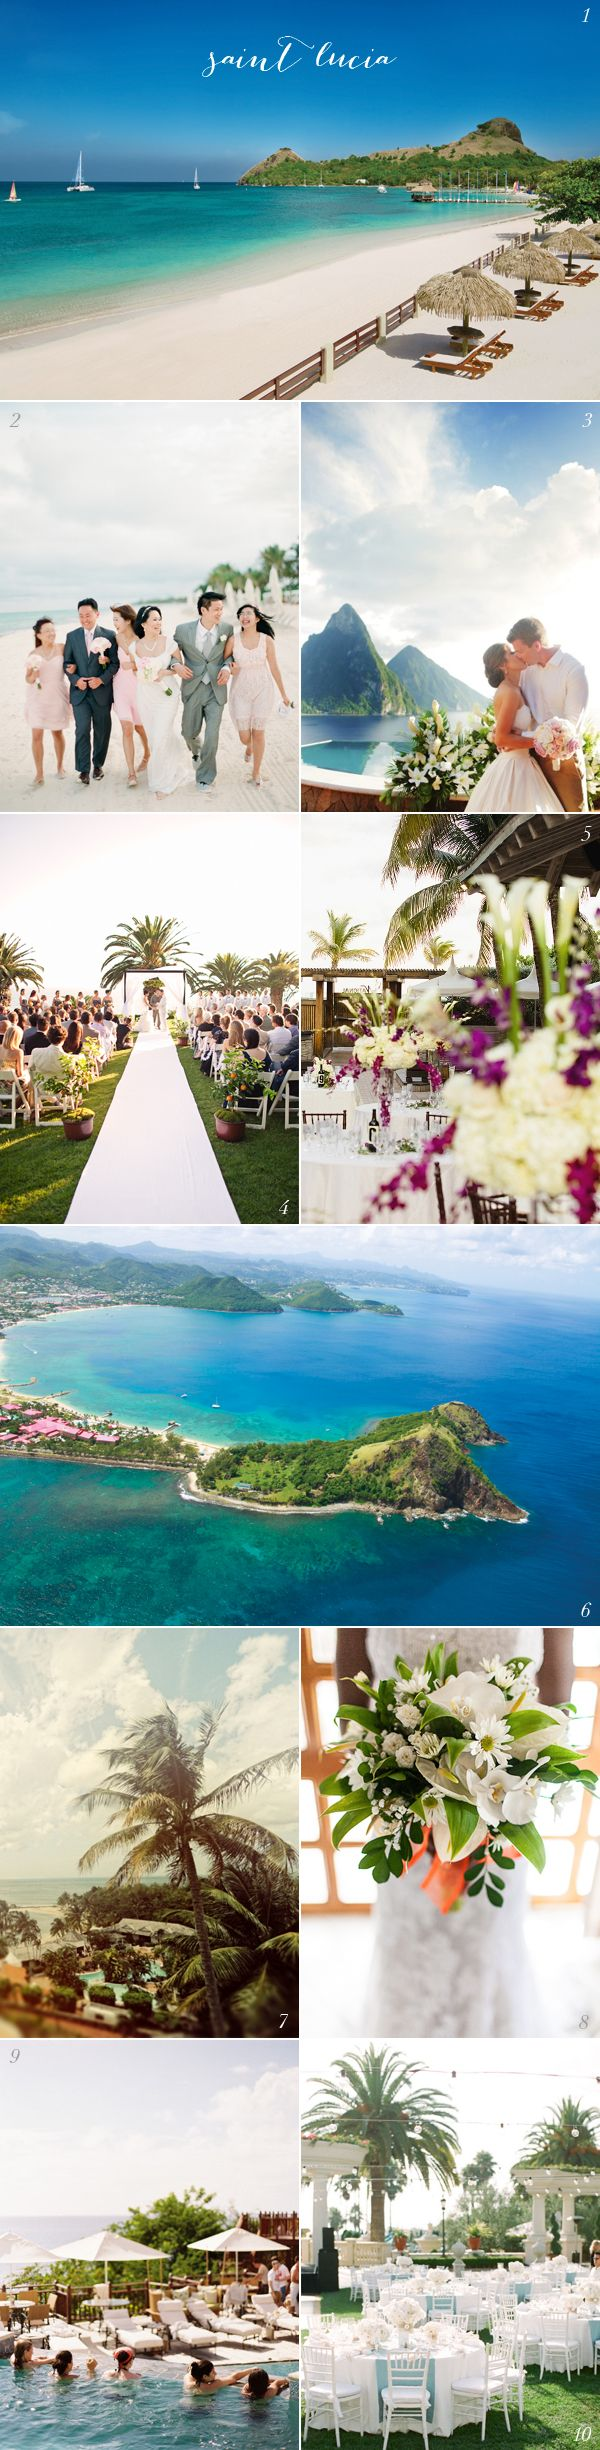 17 best images about destination wedding venues on for Best destination weddings locations